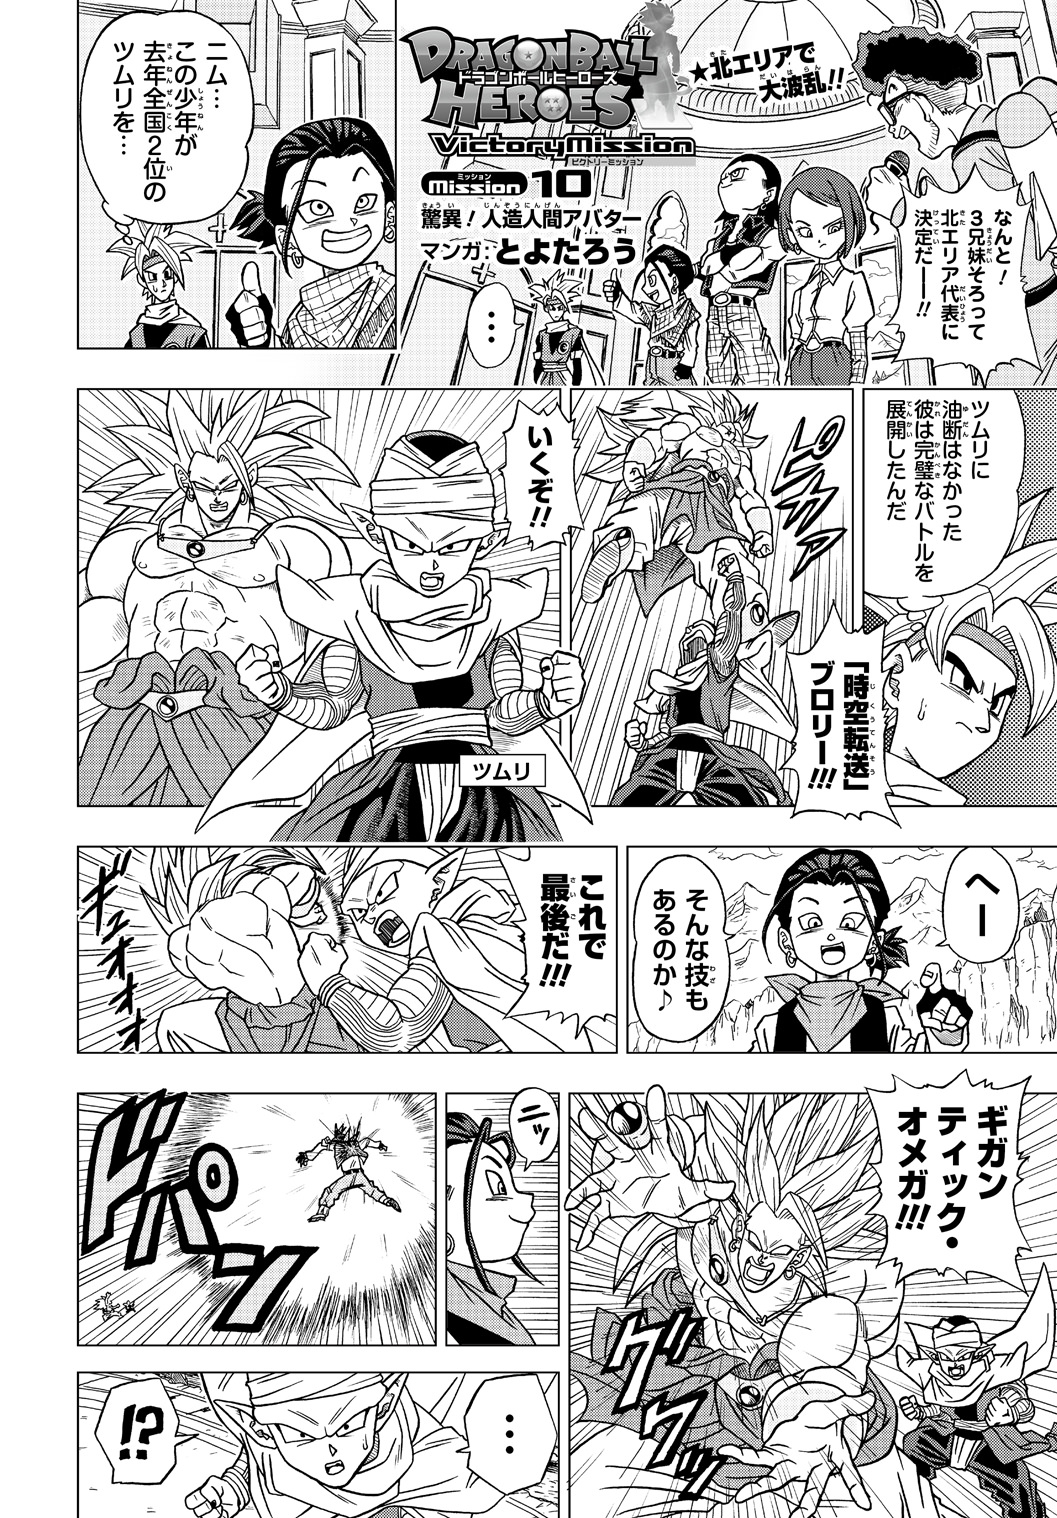 Dragon Ball Heroes Victory Mission Chapitre 010